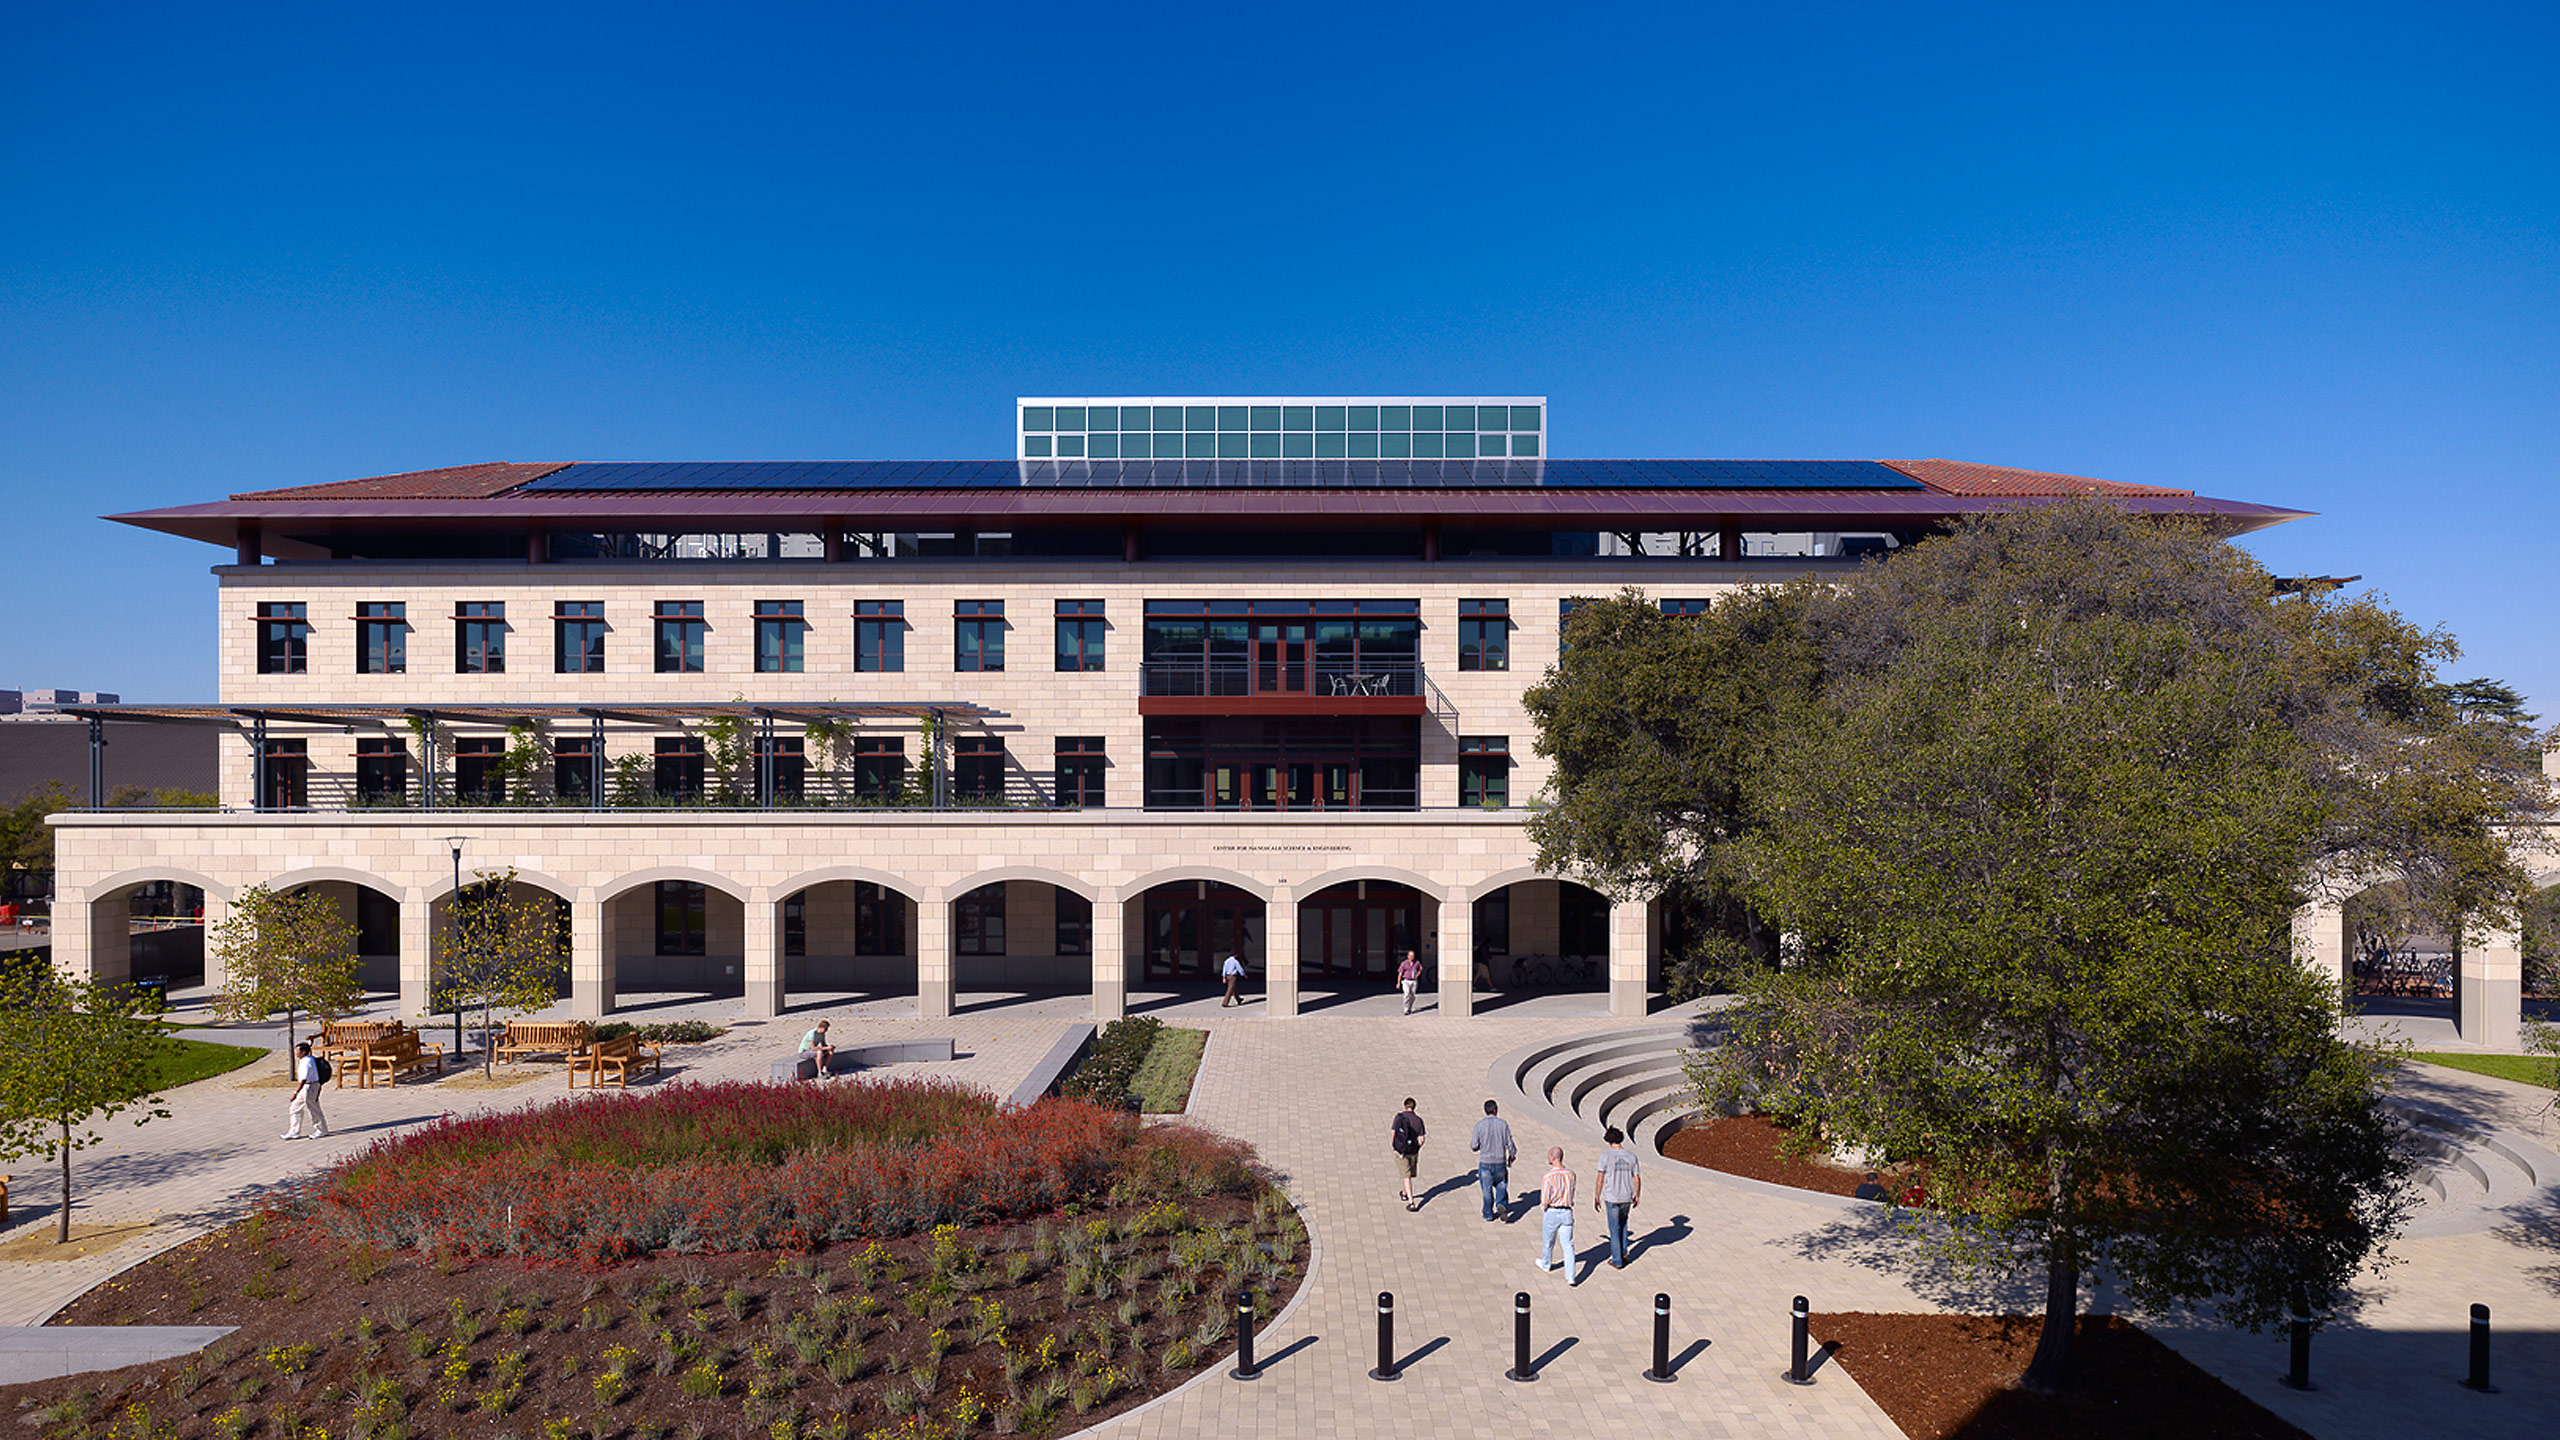 Spilker Engineering and Applied Sciences Building – Stanford University image 1